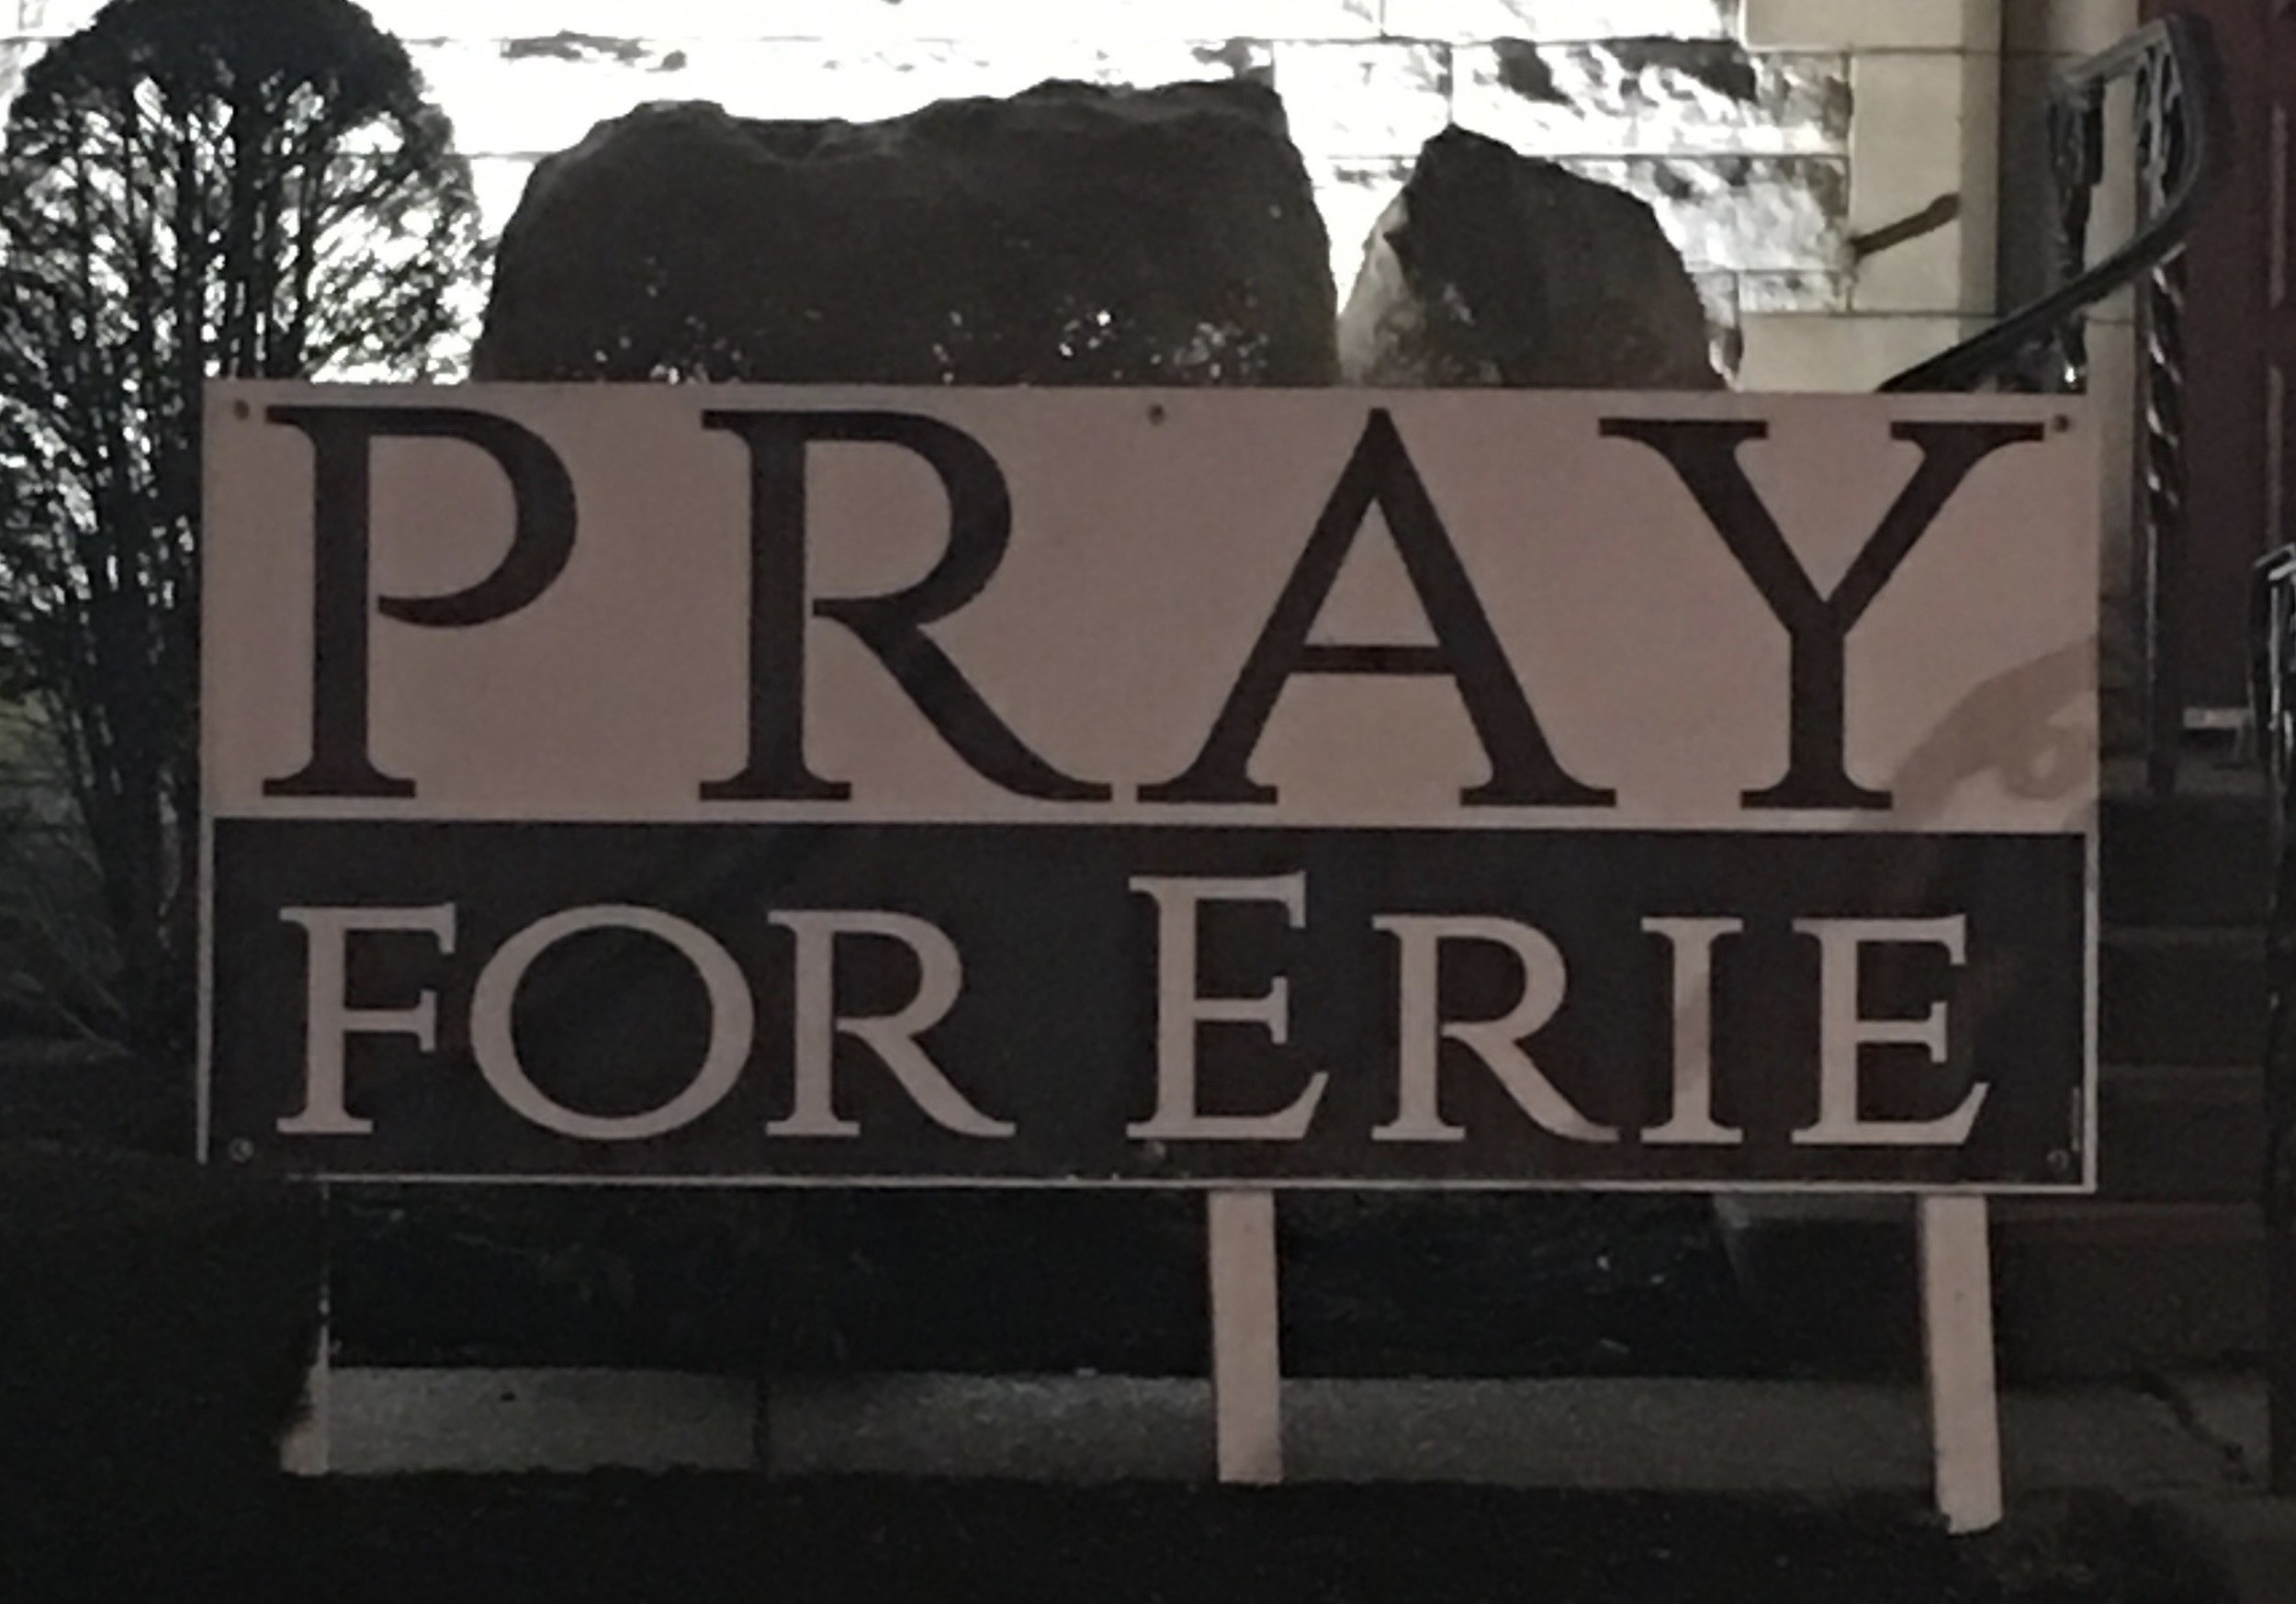 """Erie, PA (January 19, 2017) A sign that states """"Pray For Erie"""" stands across the street of the Erie County Courthouse on West Sixth Street in Erie, PA. (Photo Credit: Lauren Benzo )"""